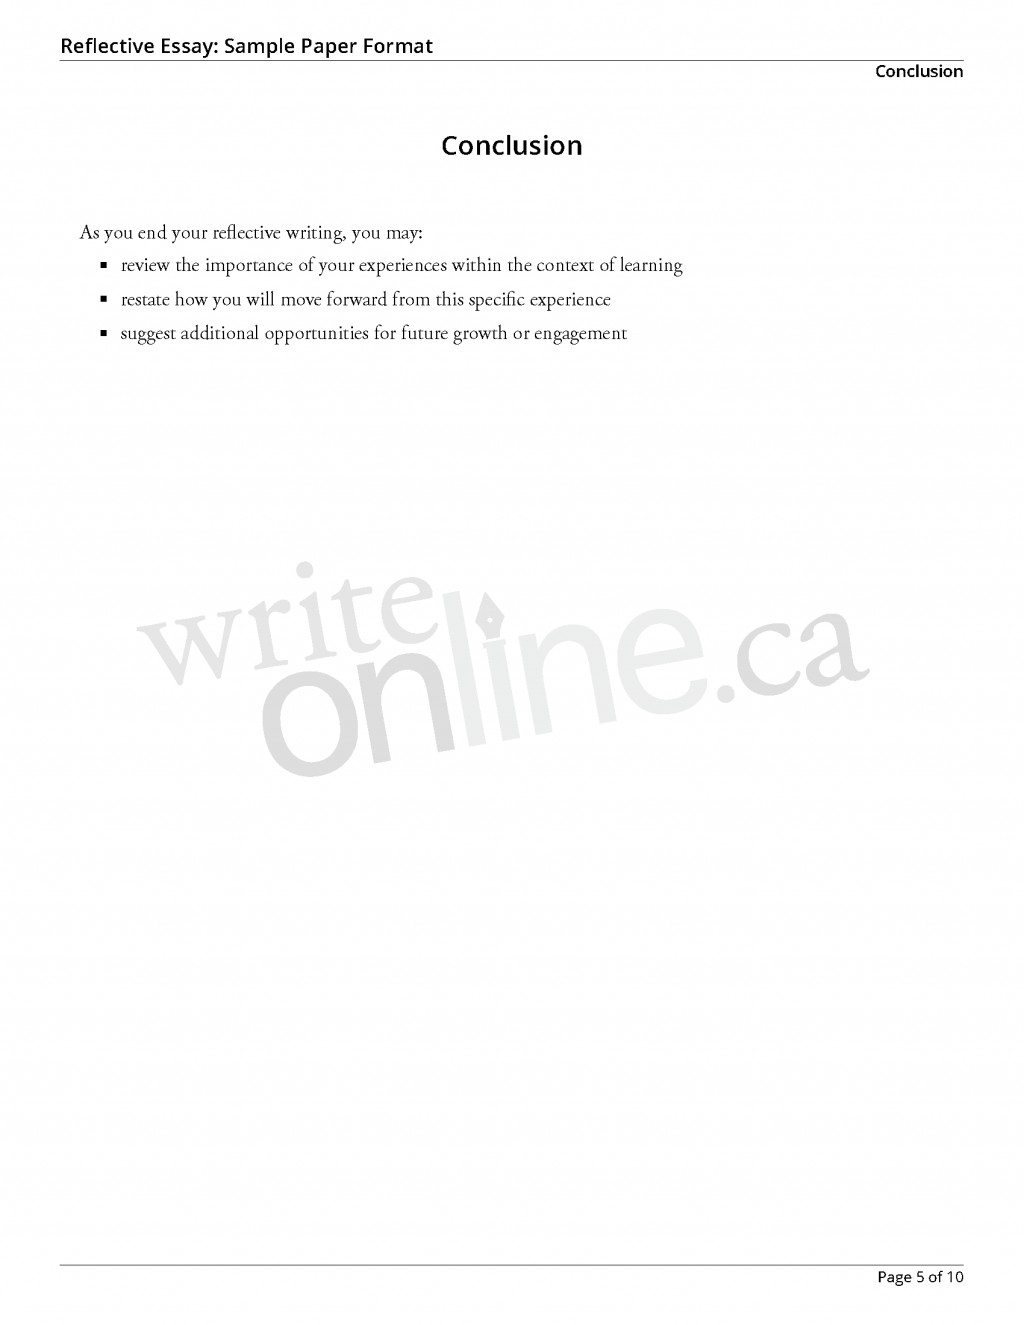 016 Reflectiveessay Sample Page 5 Essay Example How To Write Awesome A Reflection Reflective Introduction On An Article Course Large